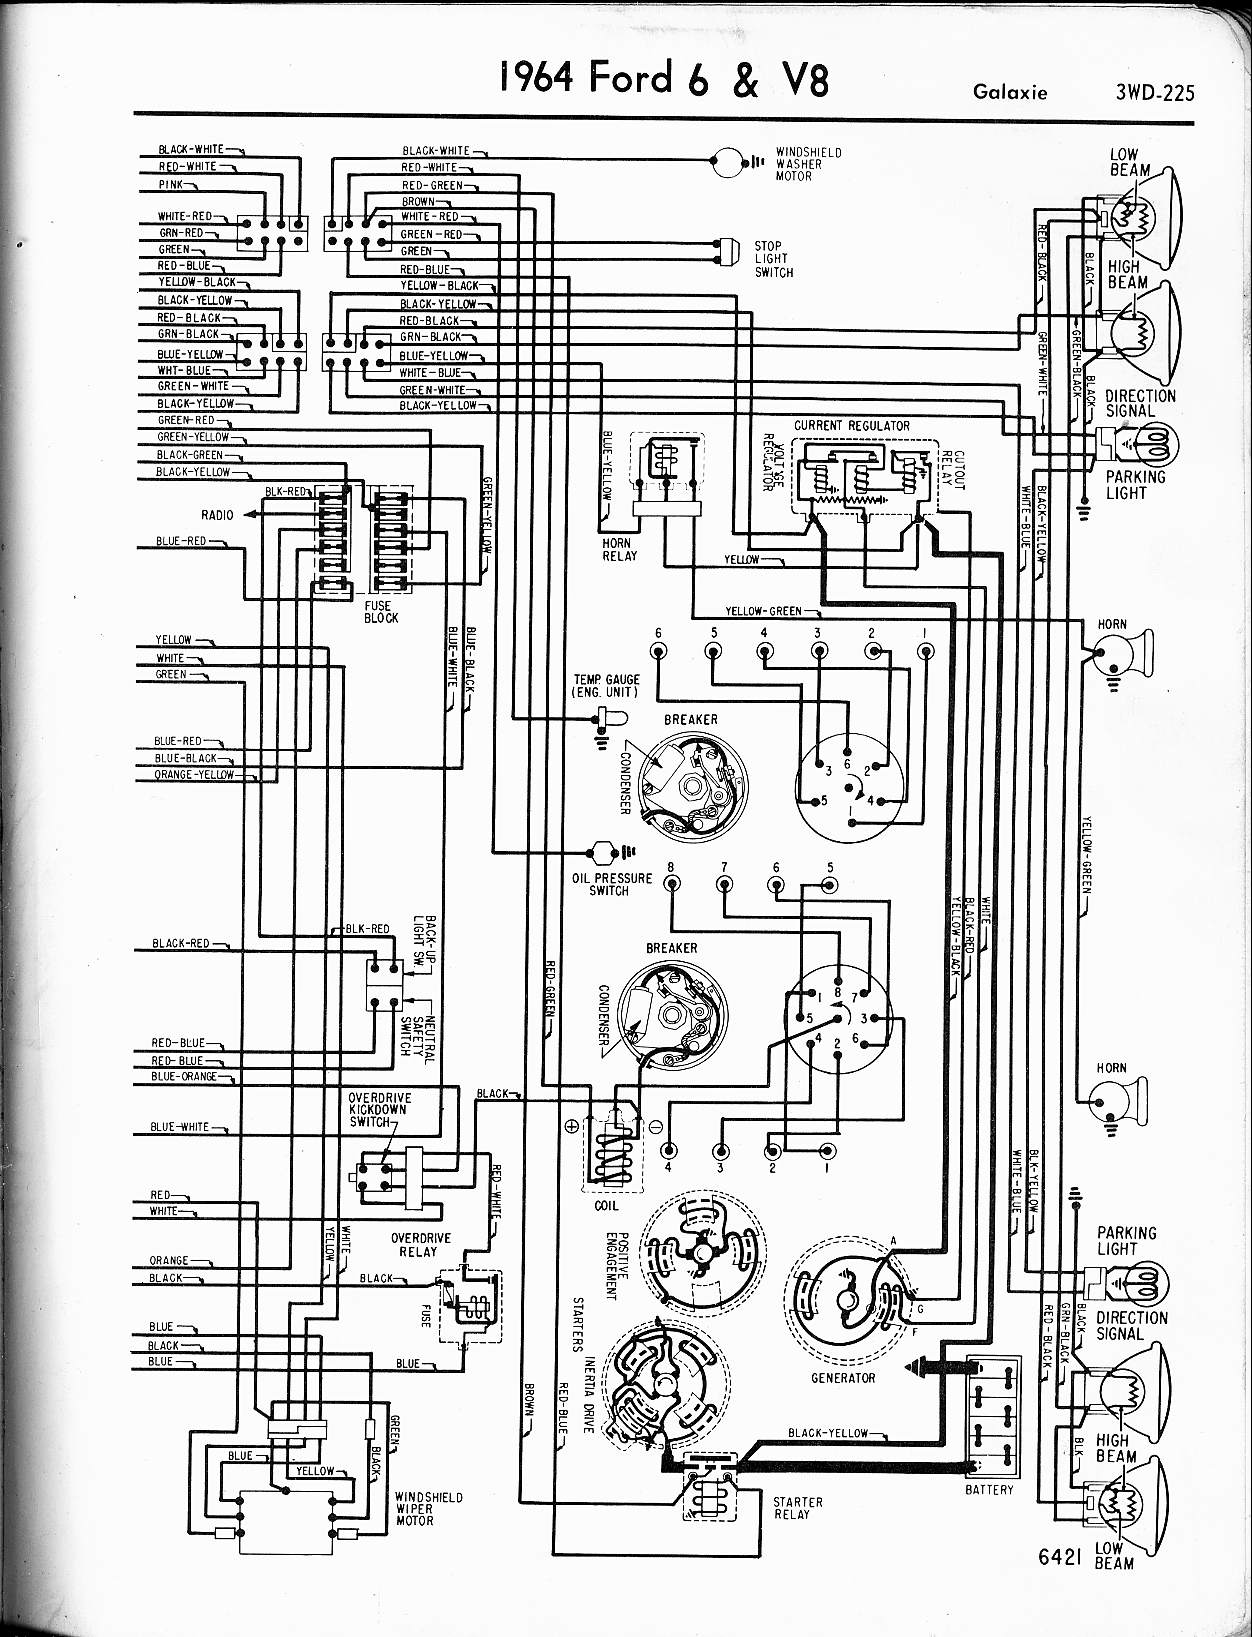 64 gto ignition wiring diagram 64 ford ignition wiring diagram technical - need electrical help - '64 galaxie w/ pulsing ...